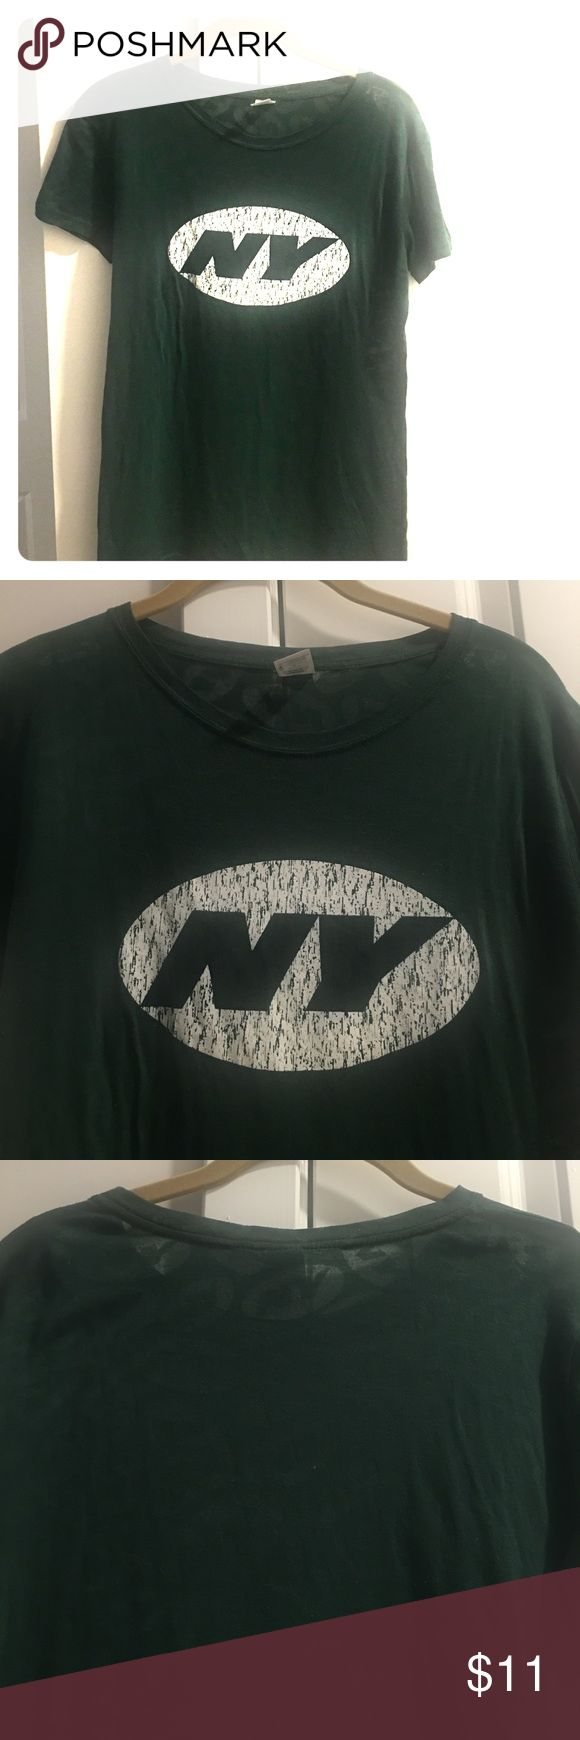 🏈 Women's, NFL, Reebok, NY JETS Fitted T-shirt 🏈Women's, NFL, Reebok, NY JETS Fitted T-shirt. NY symbol embedded in a near see-through fabric. Unique t-shirt! 65% Polyester; 35% Cotton. Reebok Tops Tees - Short Sleeve